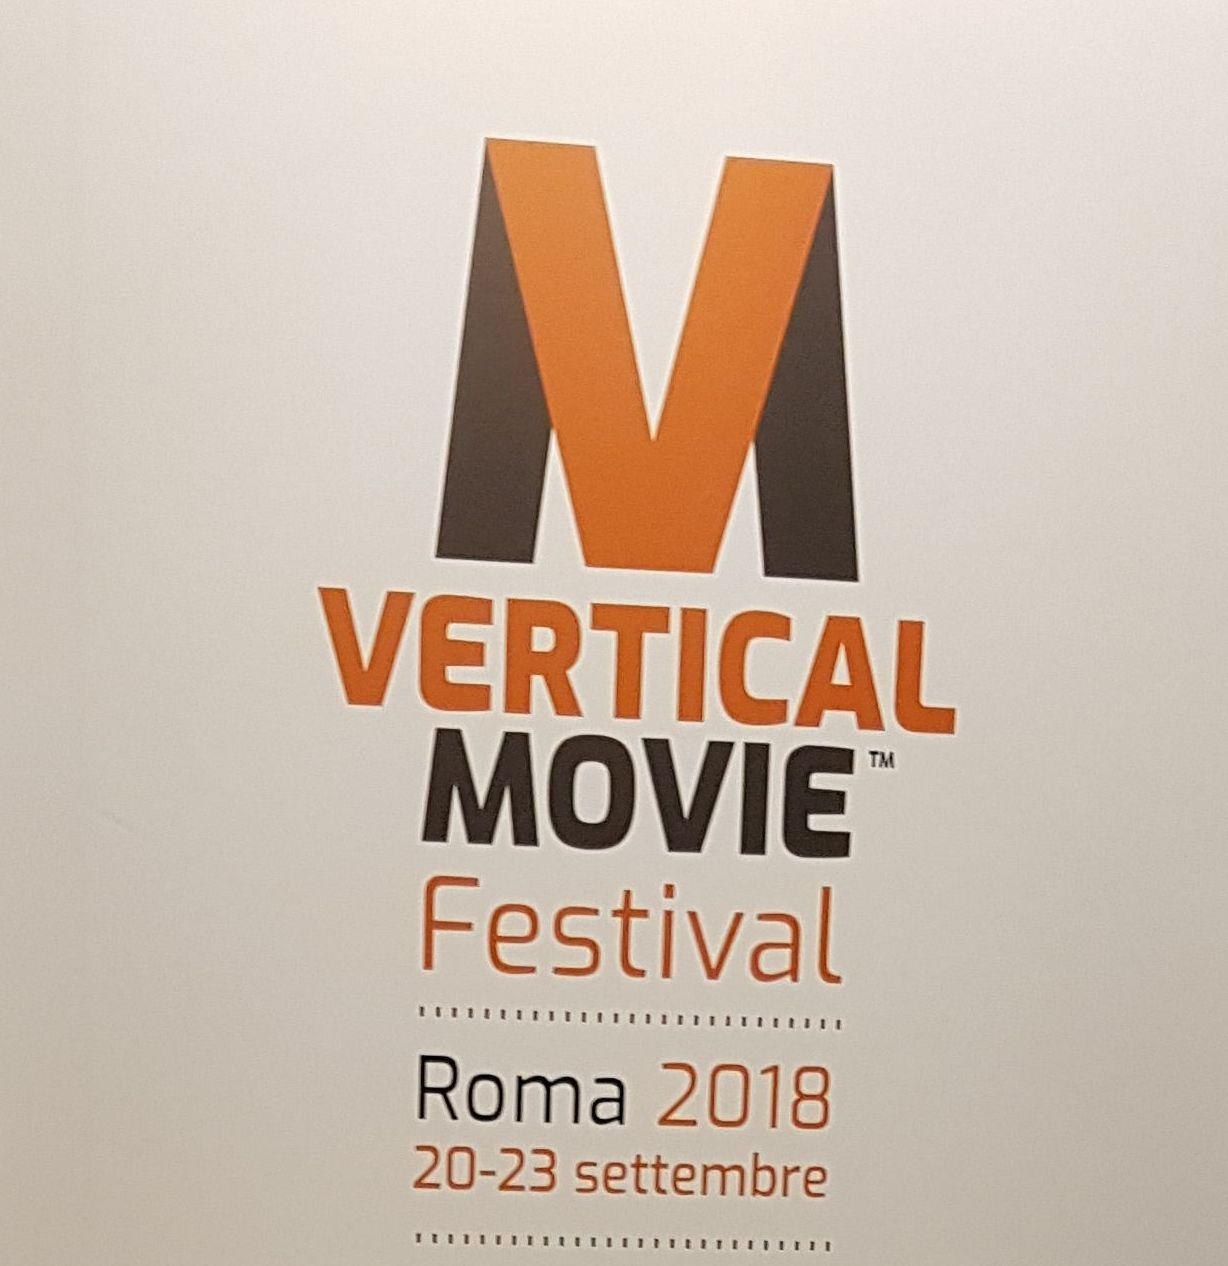 Vertical Movie